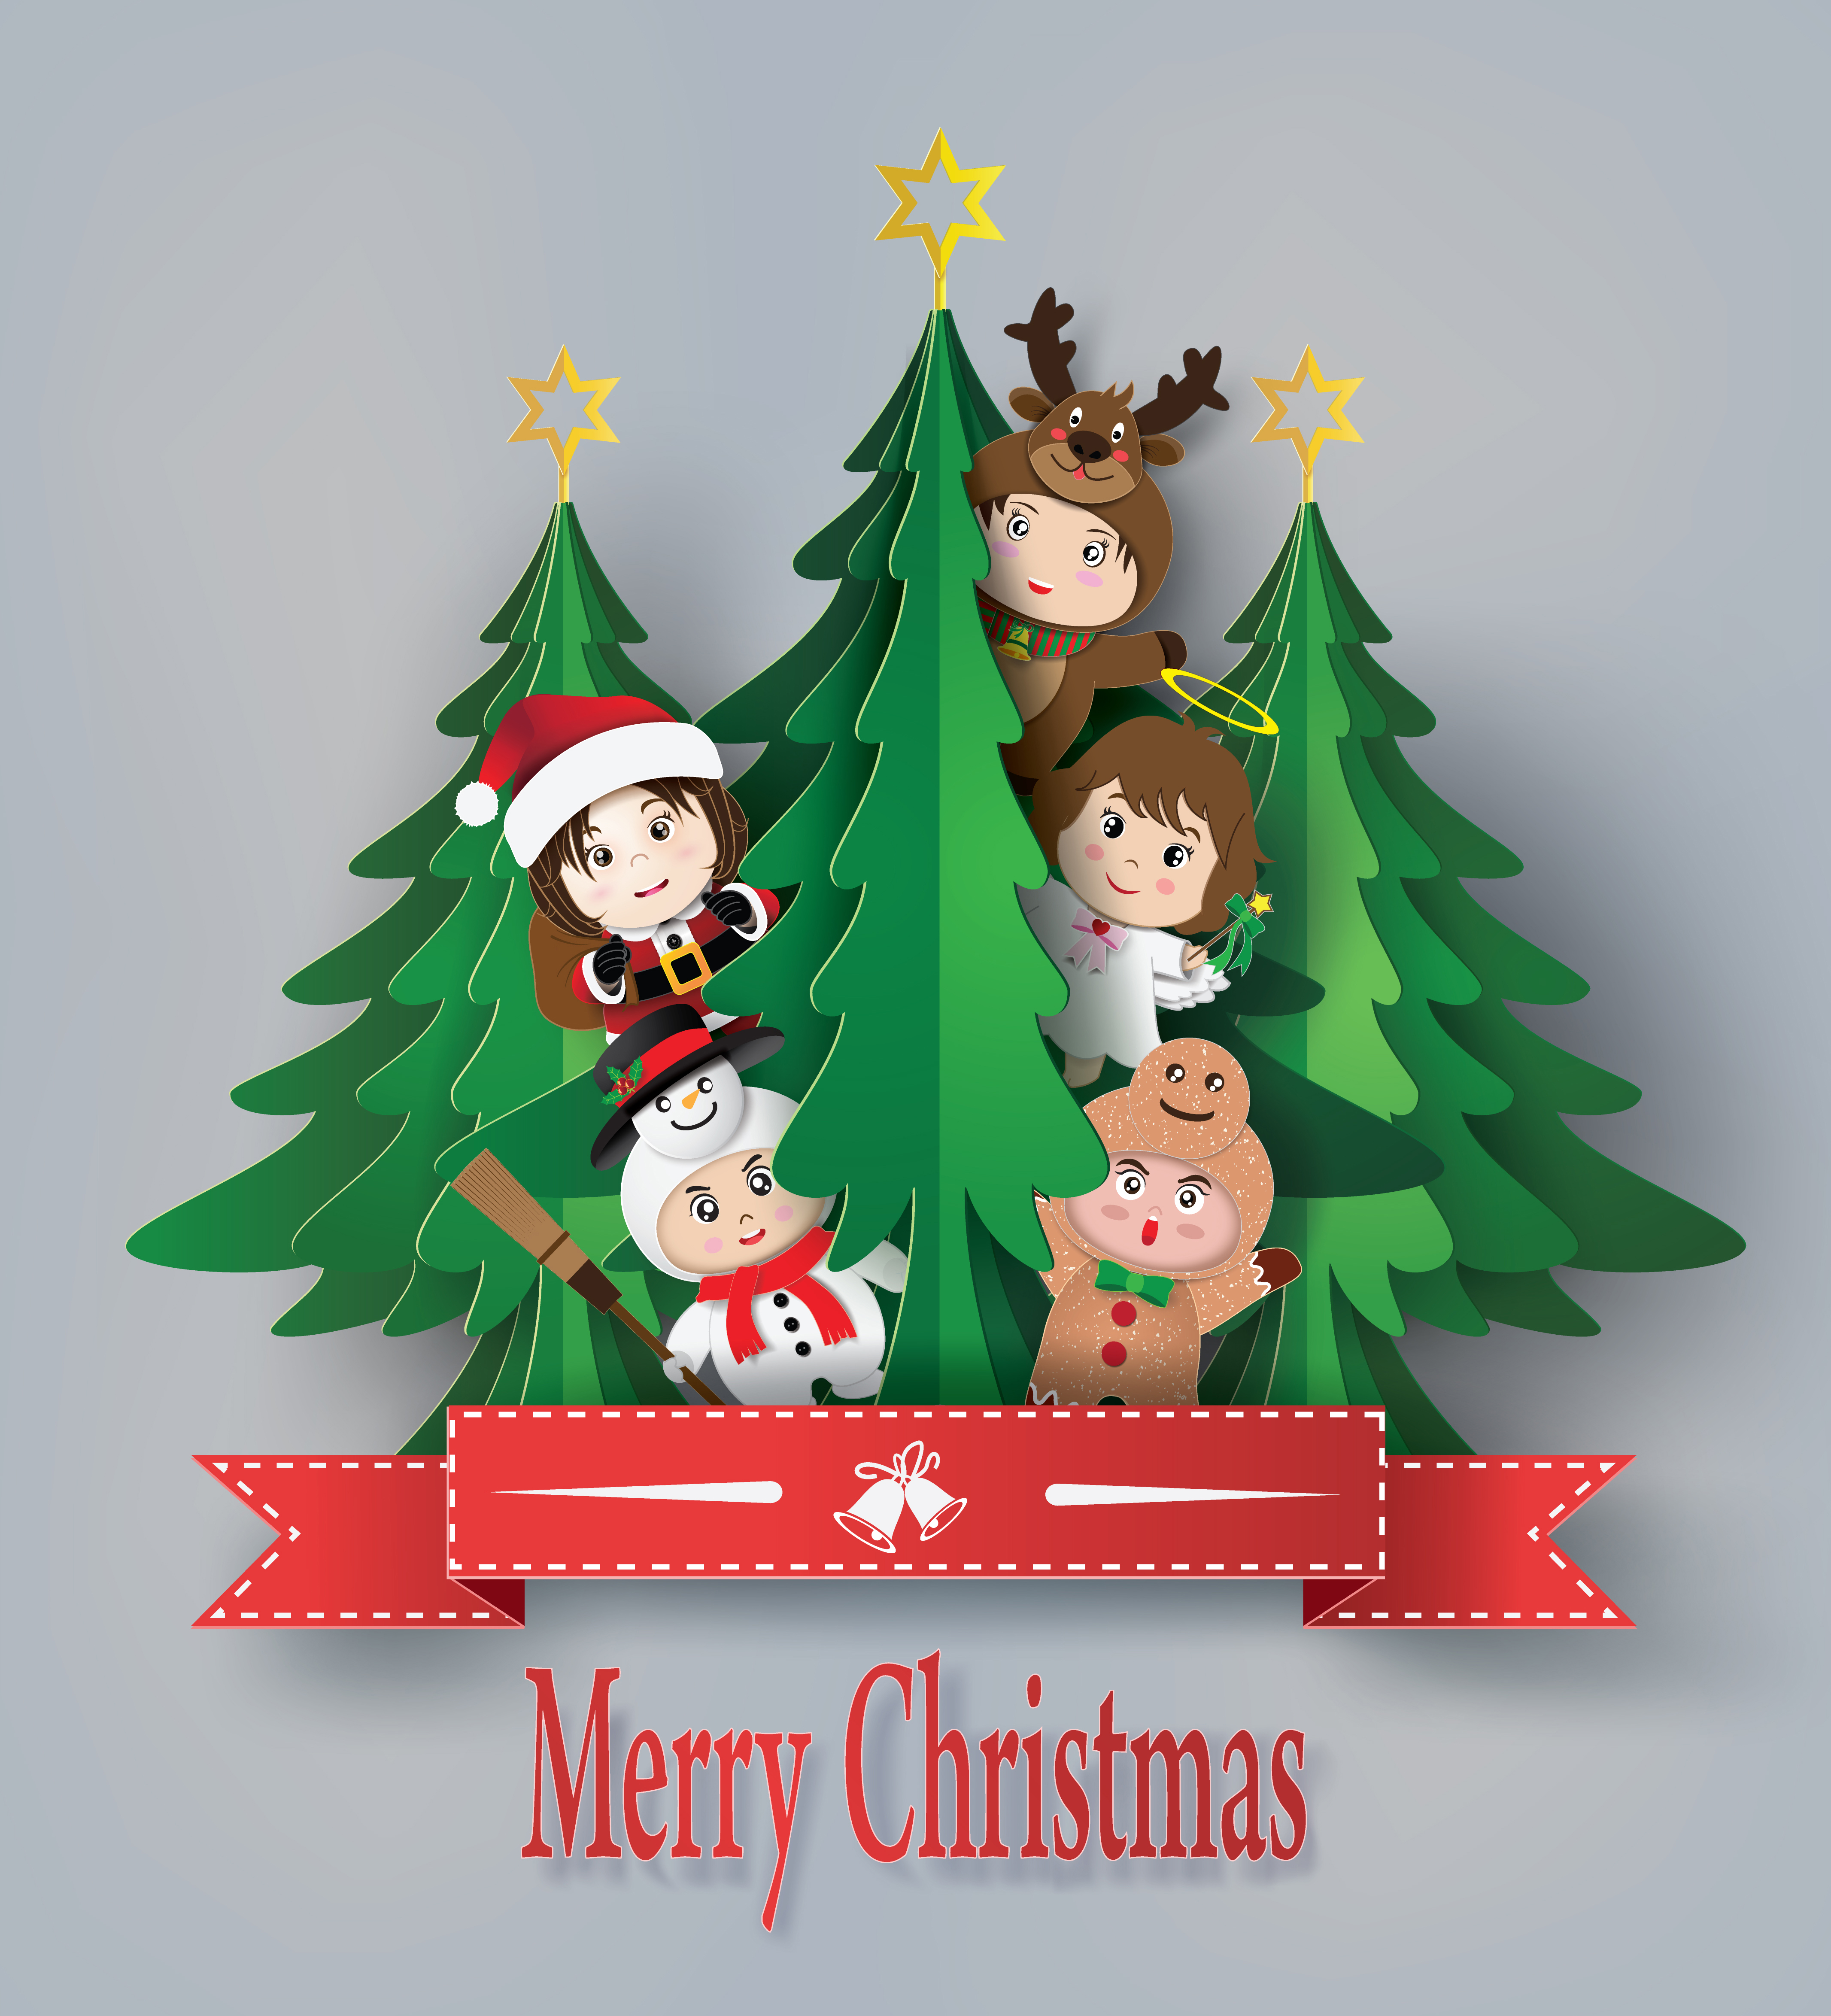 merry christmas greeting card with children  download